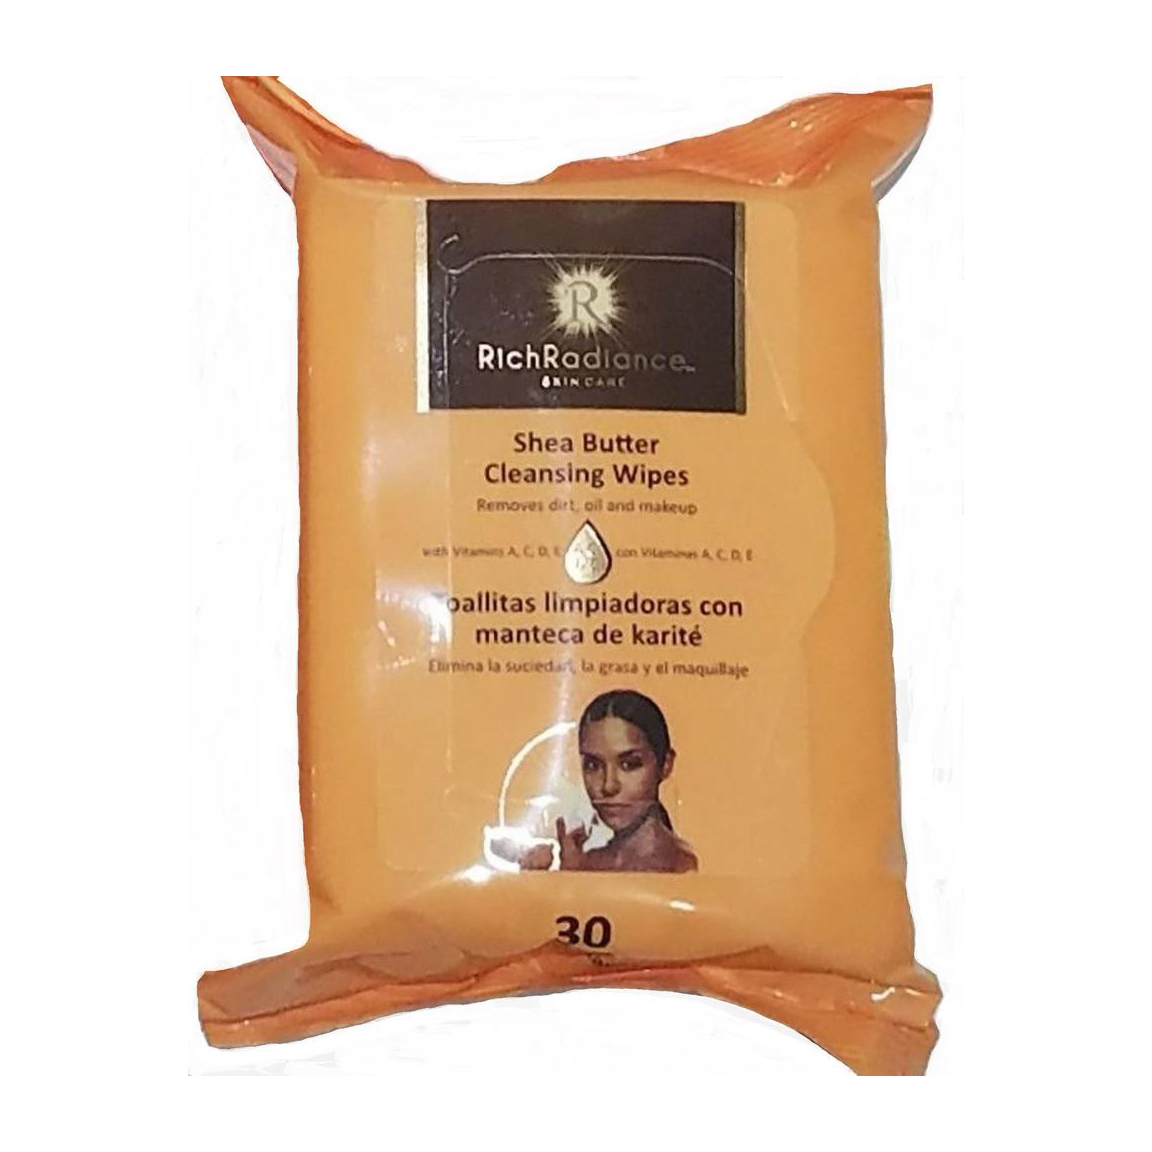 Shea Butter Makeup Cleansing Wipes